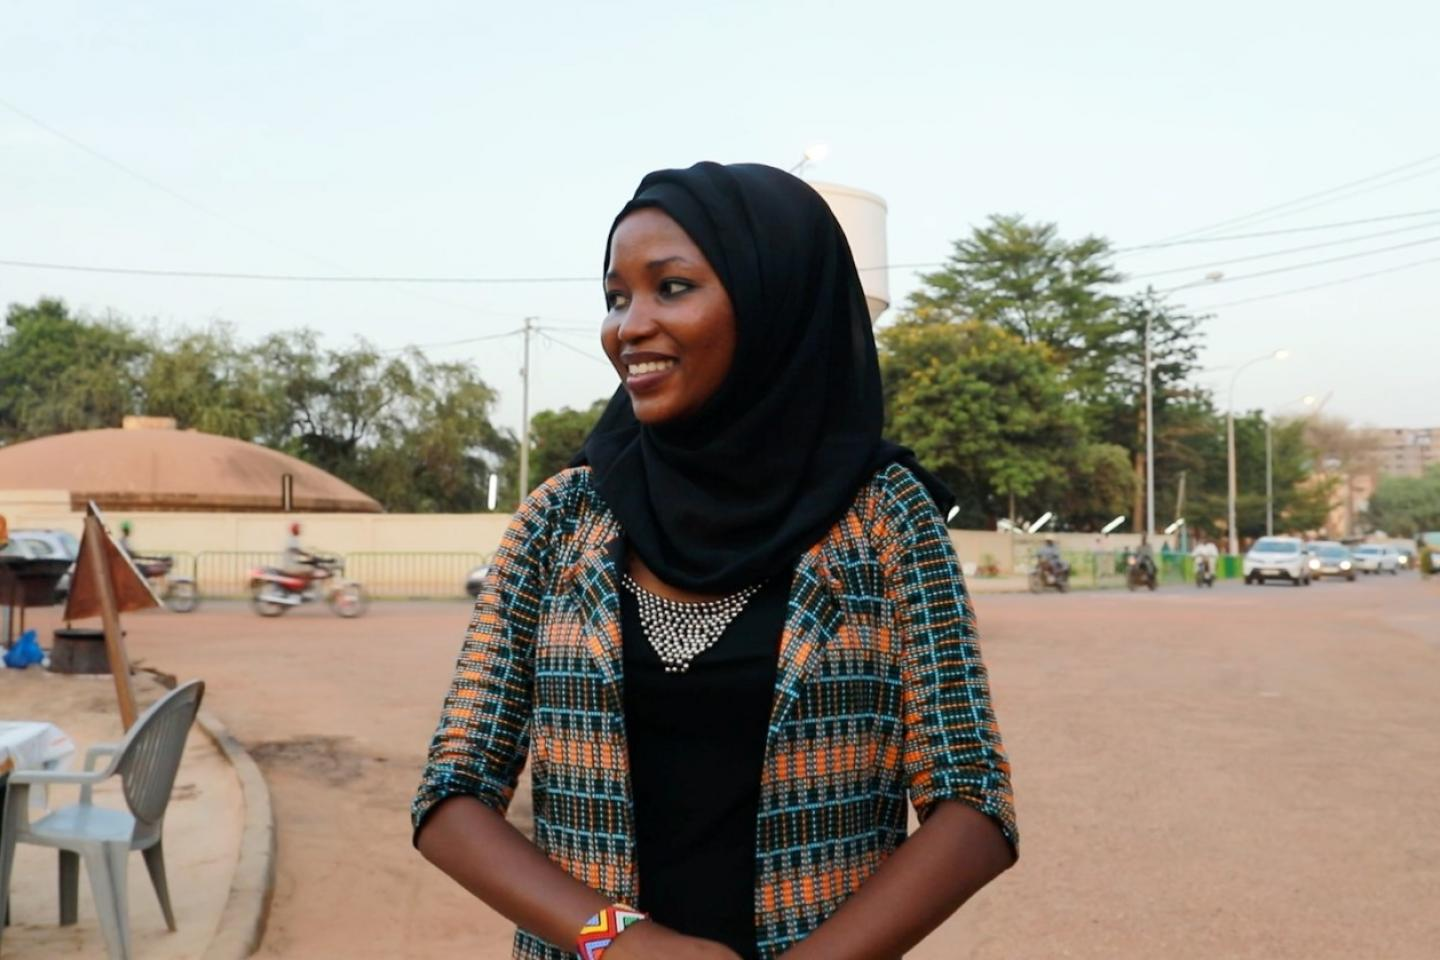 Girls take over in #Niger